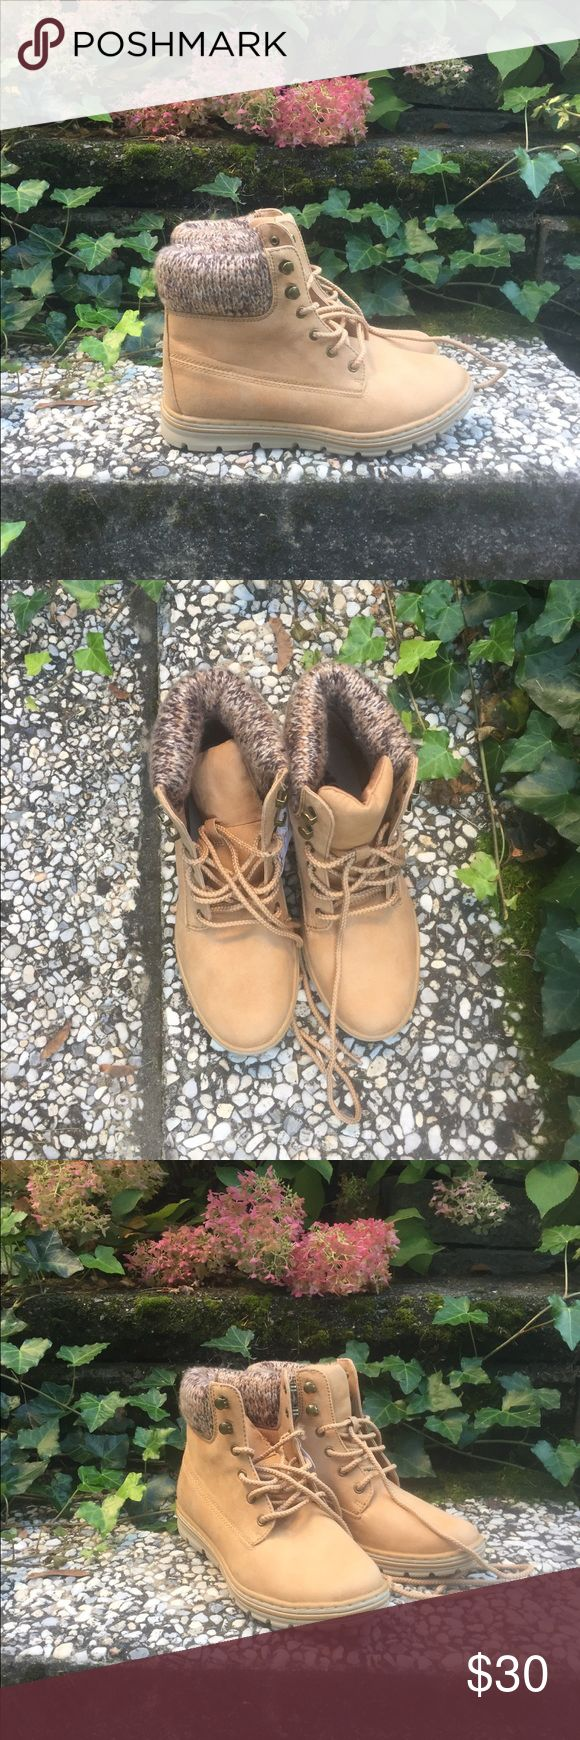 NEW Timberland-like boots! Fake timberland brand but looks just the same! Timberland Shoes